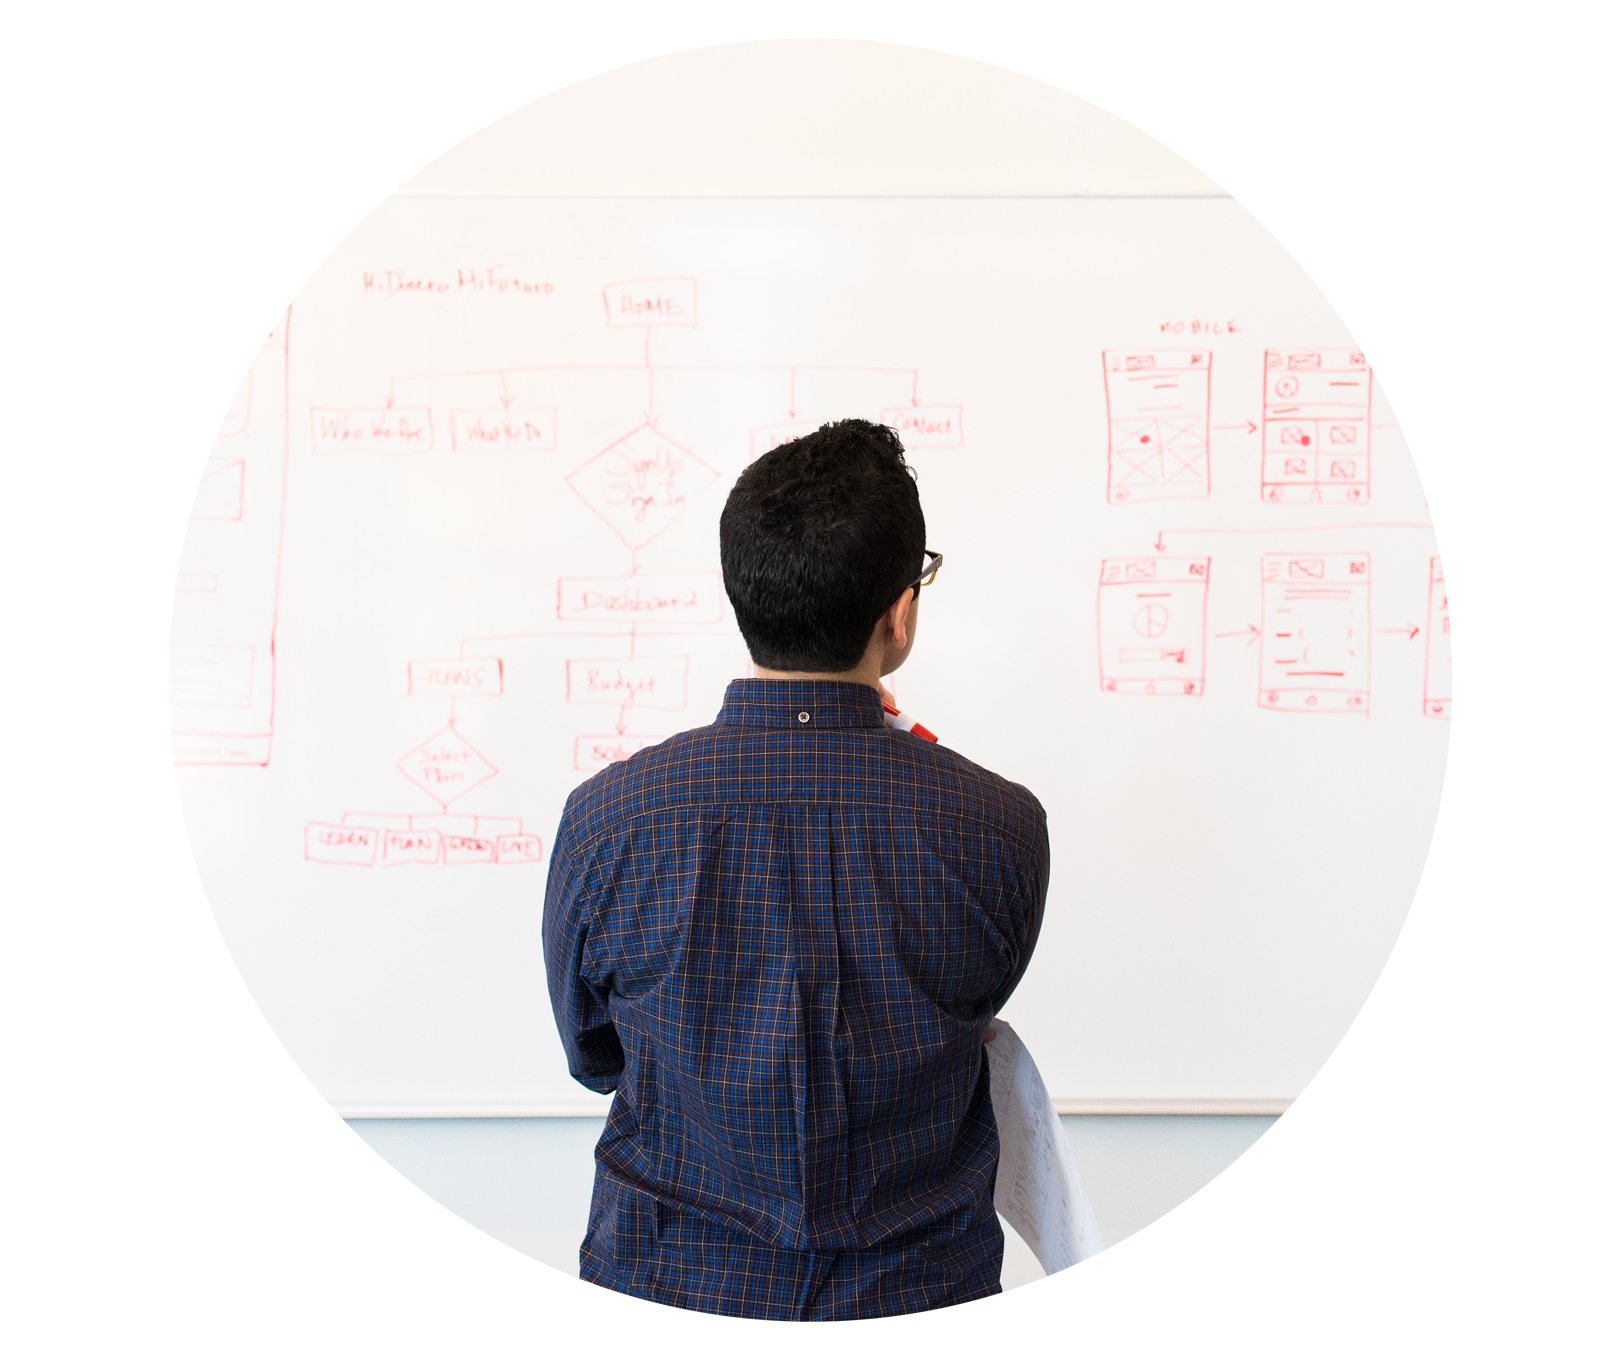 man looking at white board notes image